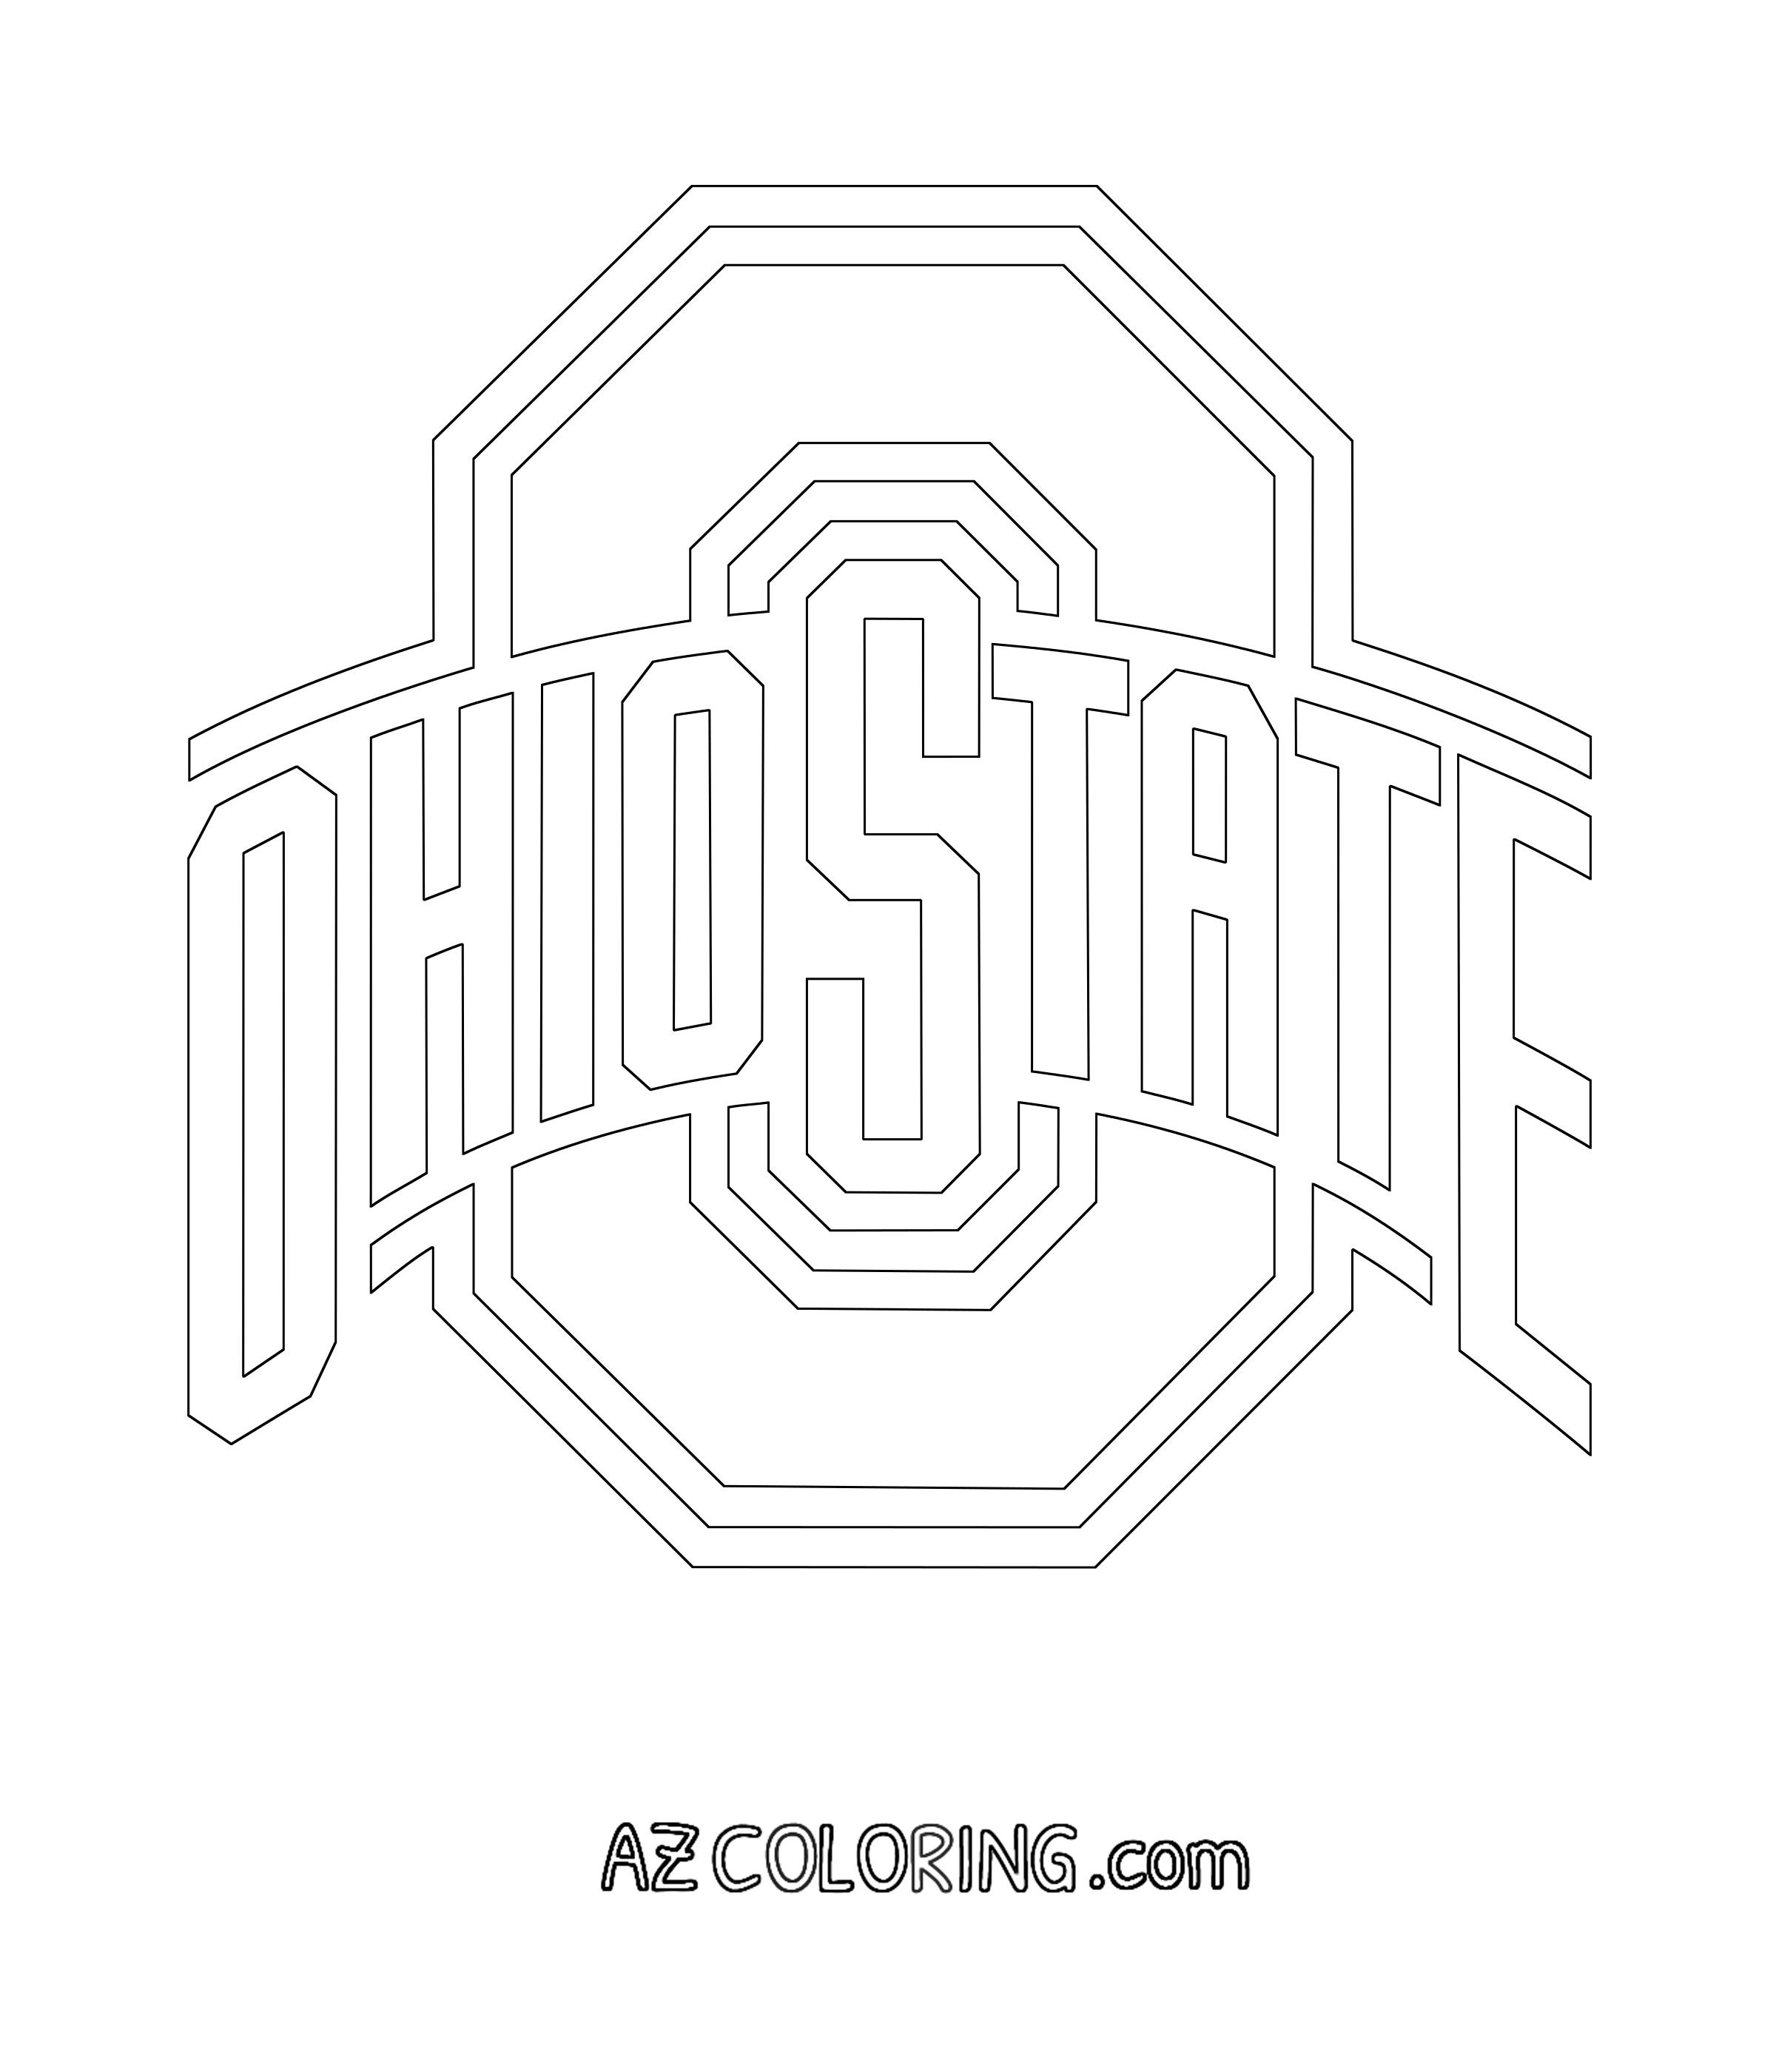 Ohio State Buckeyes Coloring Pages - Coloring Home